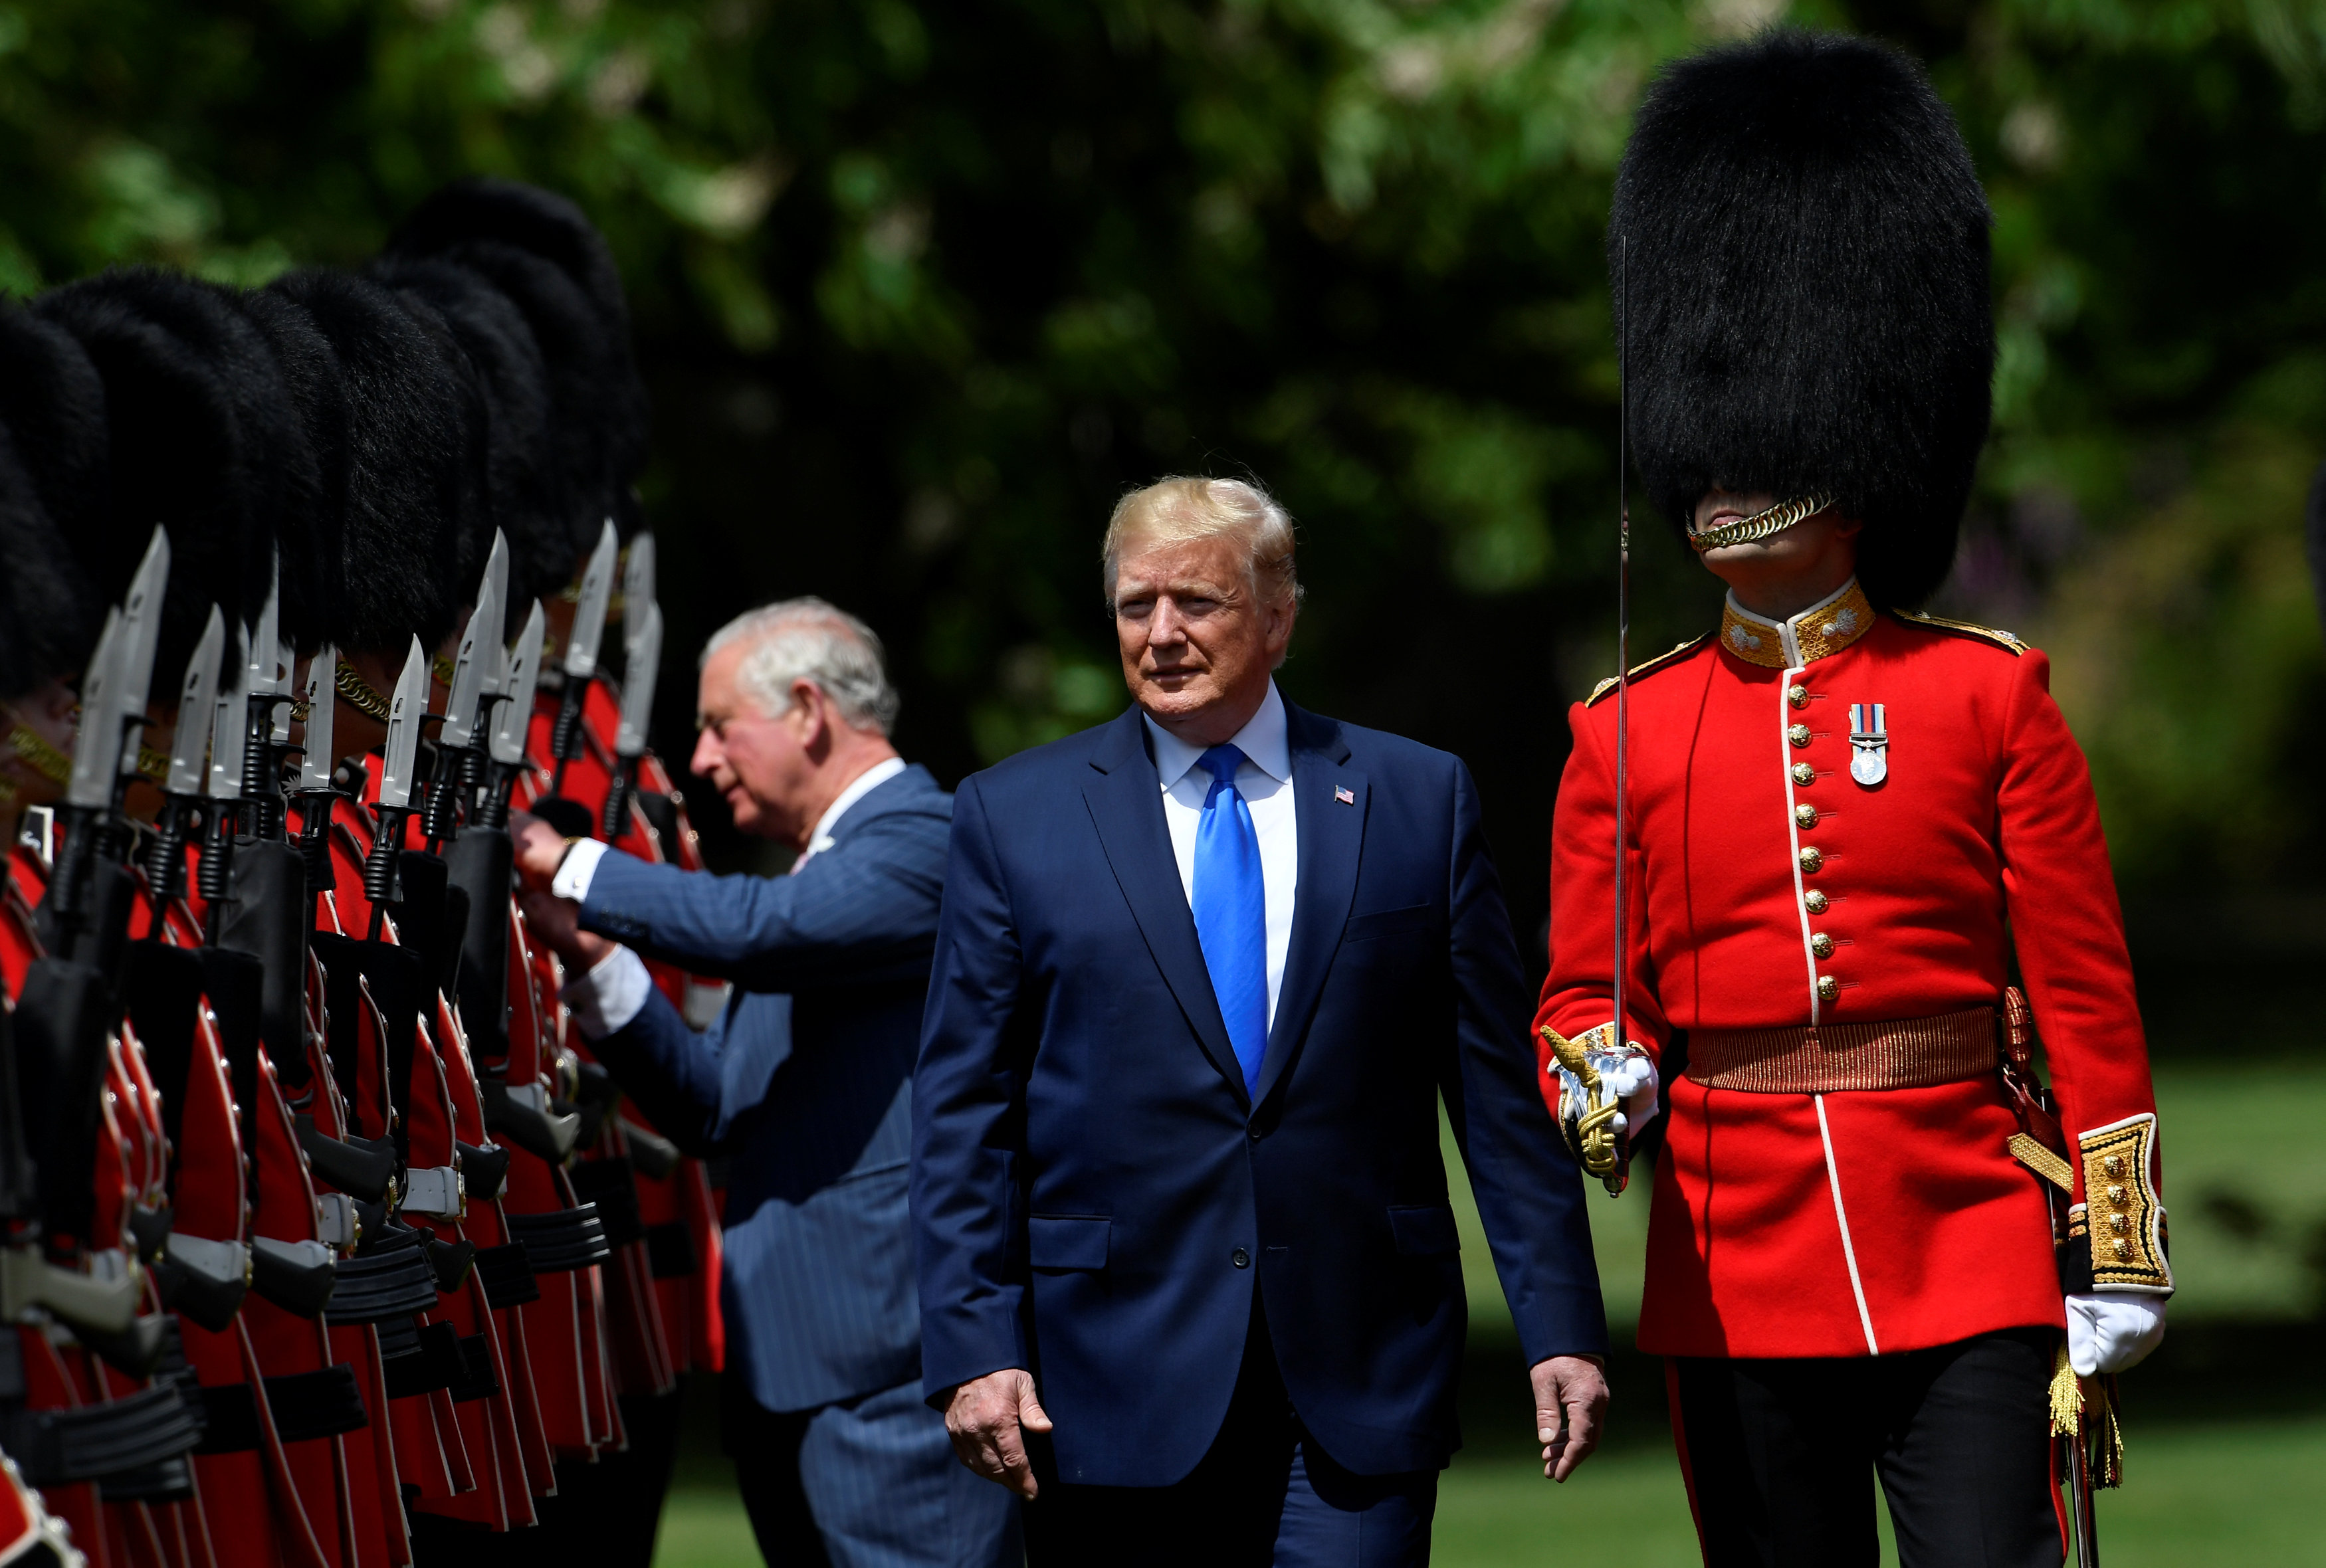 US President Donald Trump (R) inspects the honour guard with Britain's Prince Charles, Prince of Wales (L) during a welcome ceremony at Buckingham Palace in central London on June 3, 2019, on the first day of the US president and First Lady's three-day State Visit to the UK. - Britain rolled out the red carpet for US President Donald Trump on June 3 as he arrived in Britain for a state visit already overshadowed by his outspoken remarks on Brexit. (Photo by TOBY MELVILLE / POOL / AFP)        (Photo credit should read TOBY MELVILLE/AFP/Getty Images)